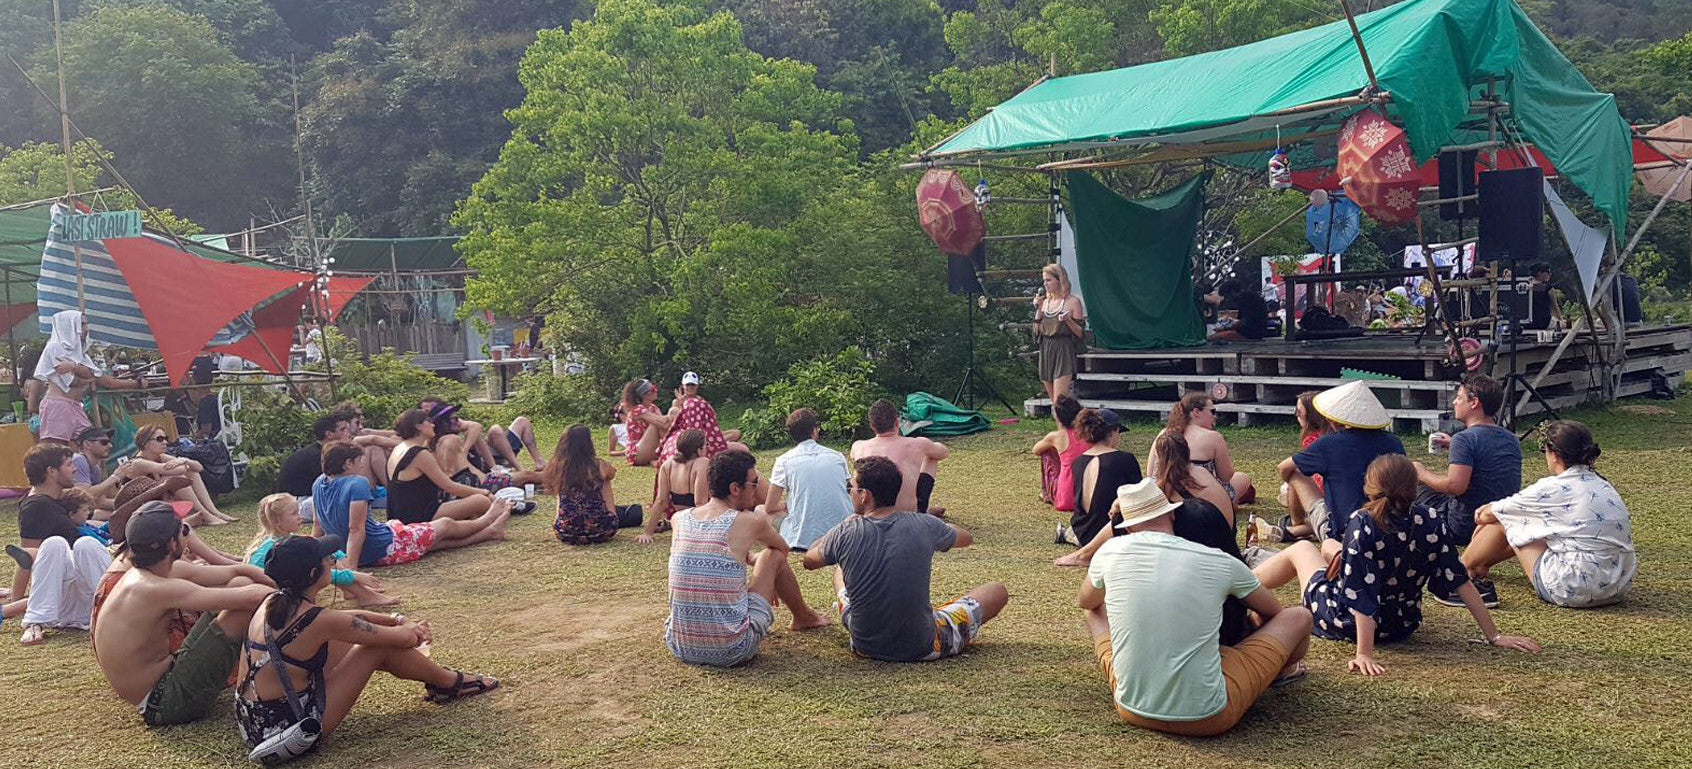 Shi Fu Miz festival, our talk about the Zero Waste lifestyle